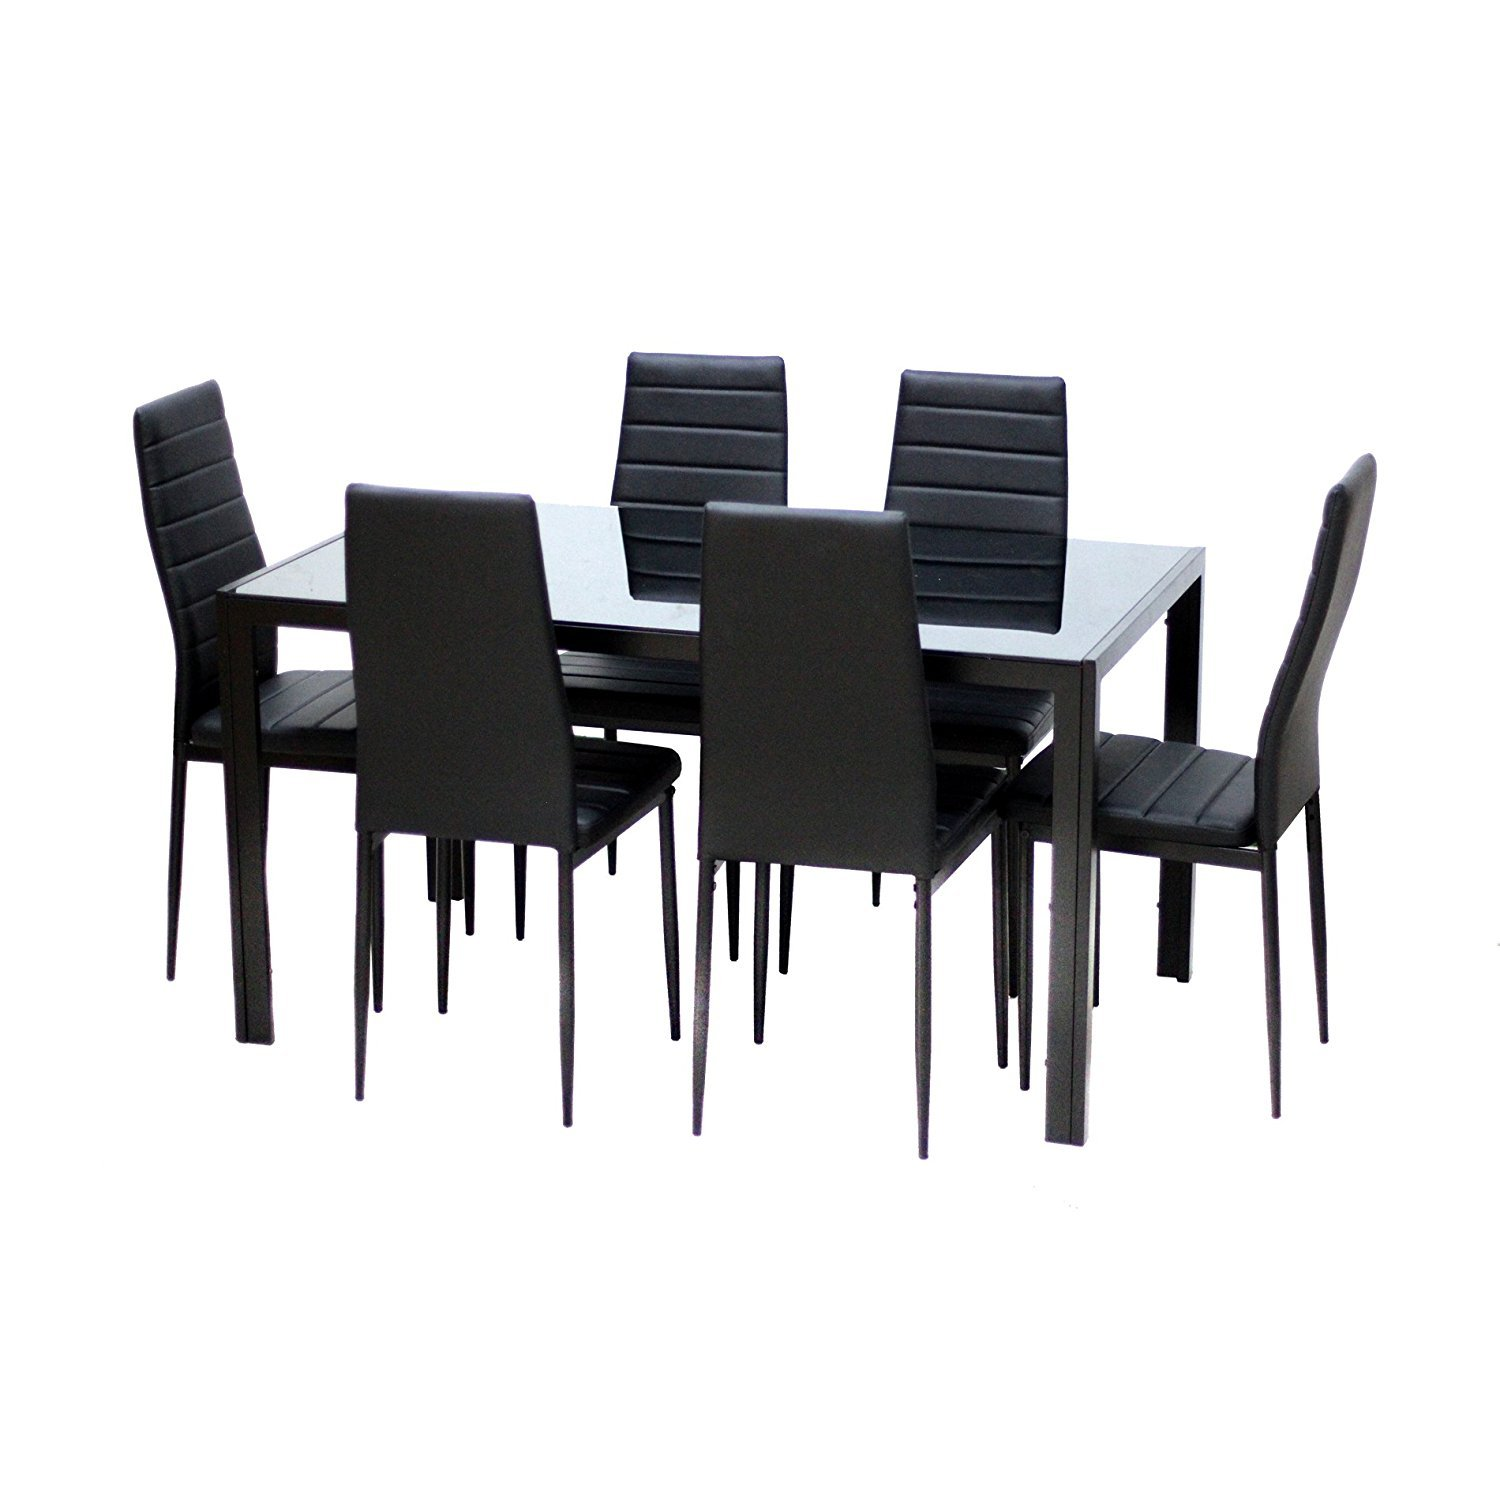 ebs black glass dining table set and 6 chairs dining room furniture set modern design faux leather